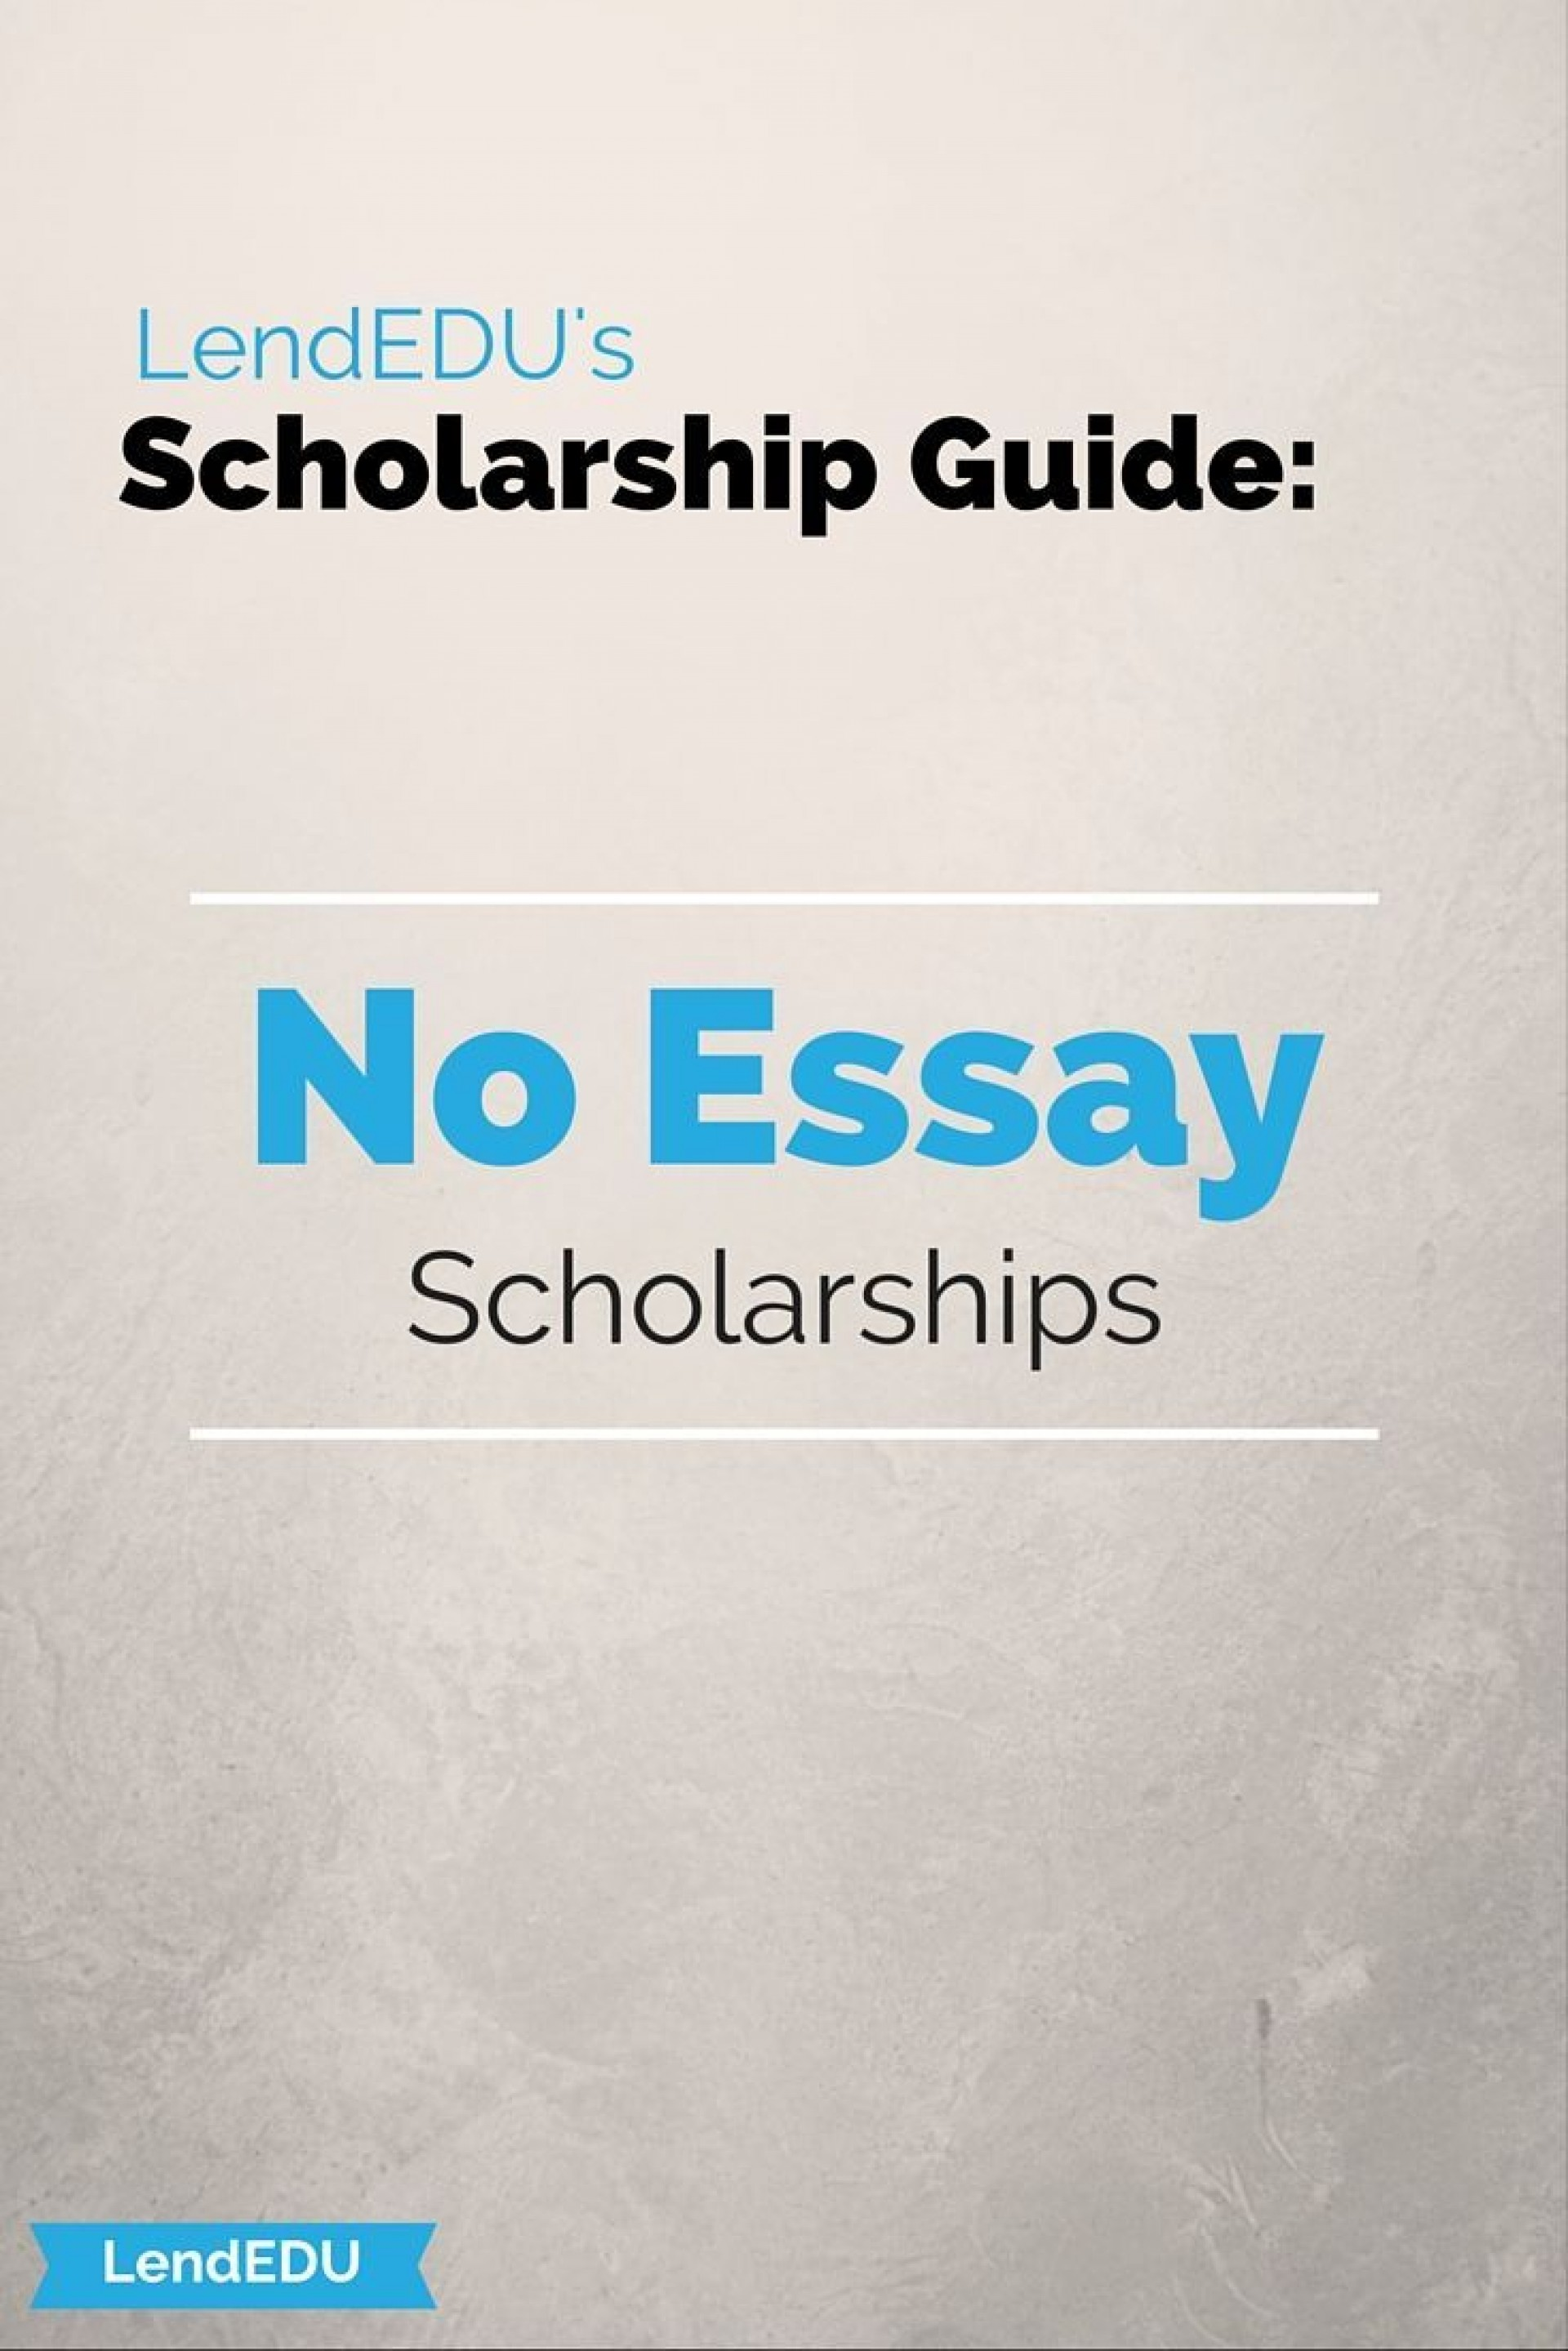 018 No Essay Scholarships Example Exceptional December 2018 For Undergraduates 1920